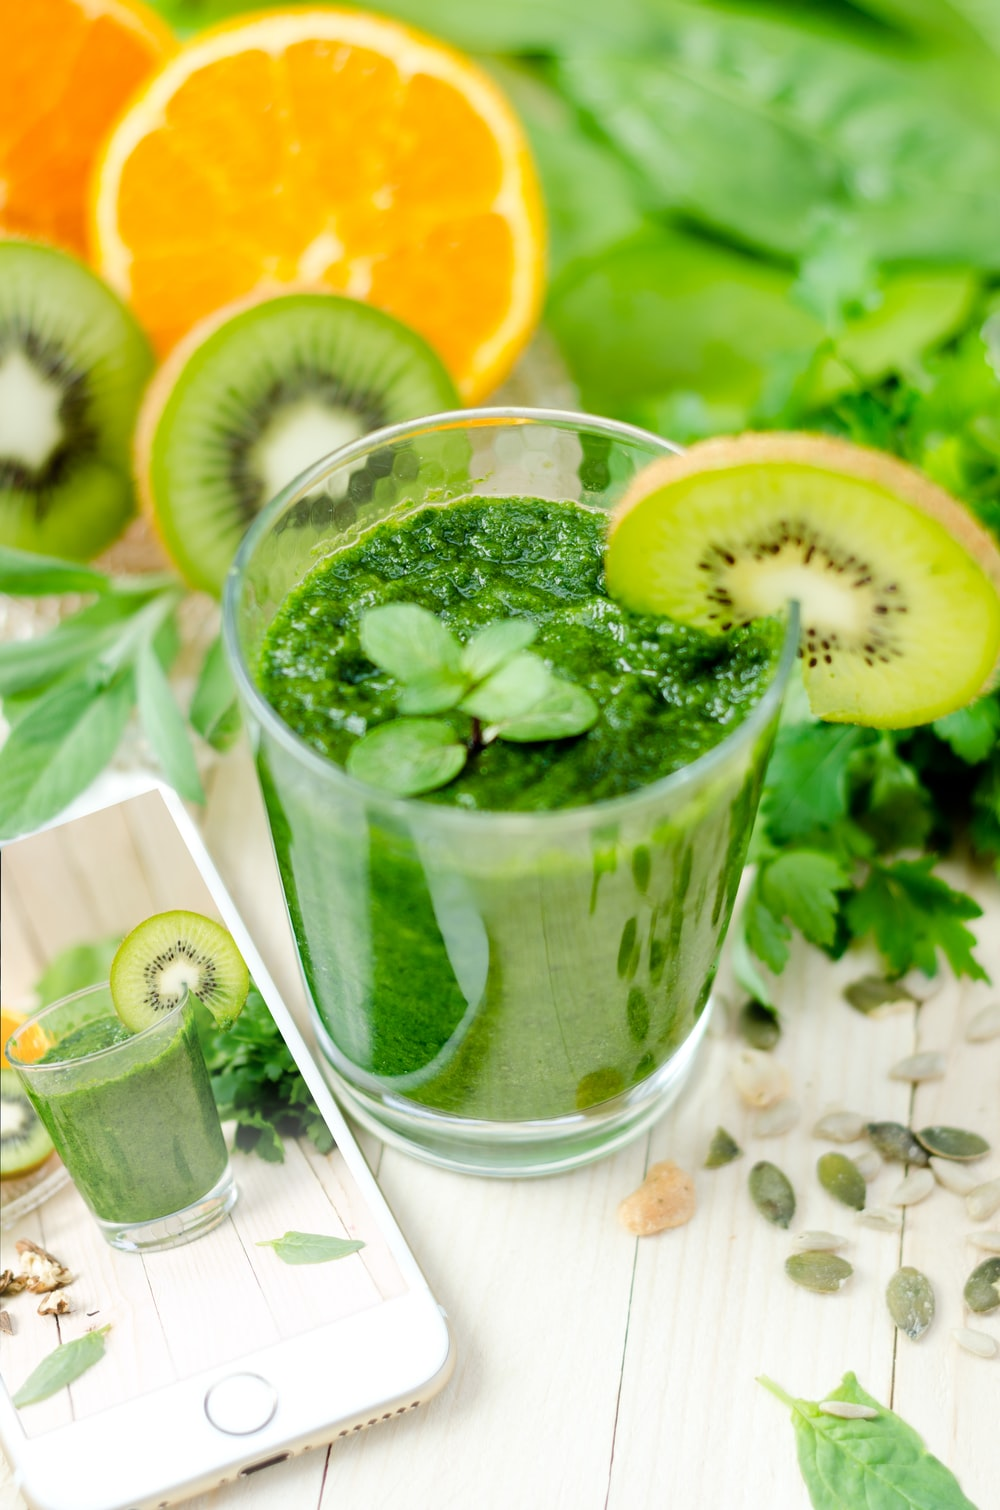 green shake fruits with kiwi